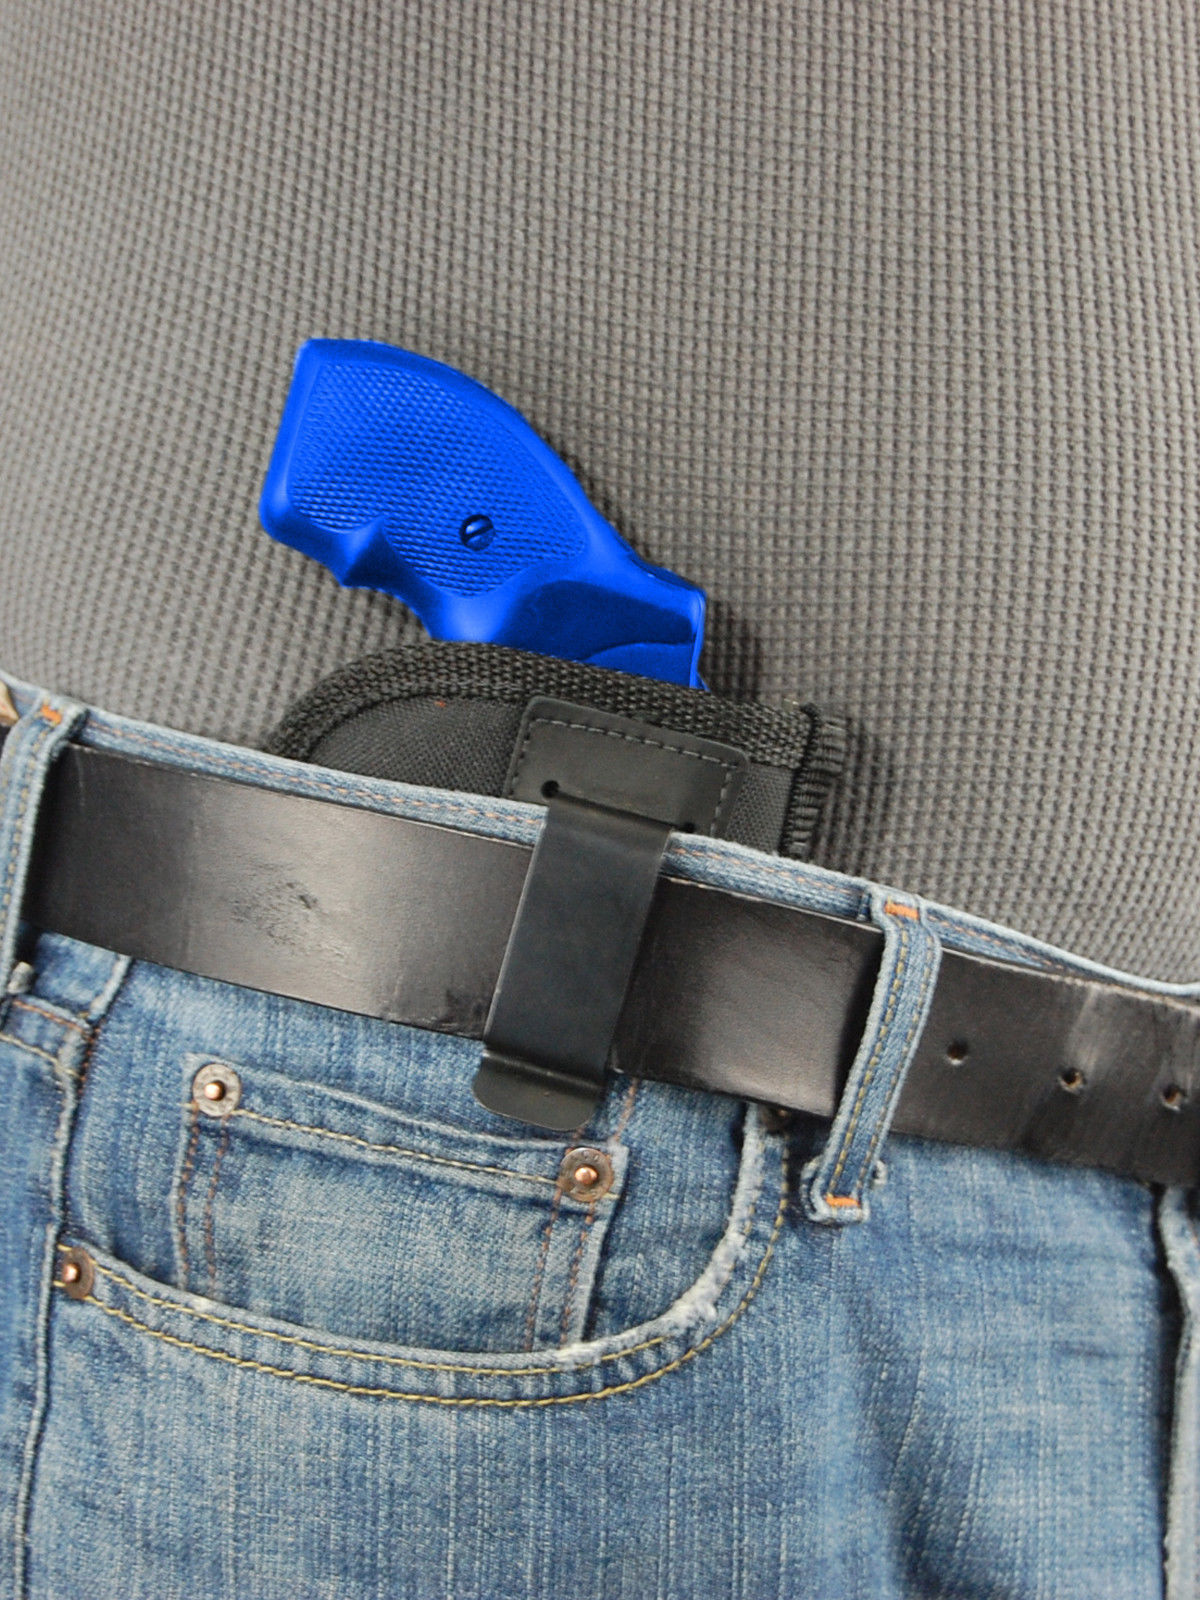 """Barsony IWB Gun Concealment Holster for Charter Arms 2"""" Snub Nose Revolvers"""